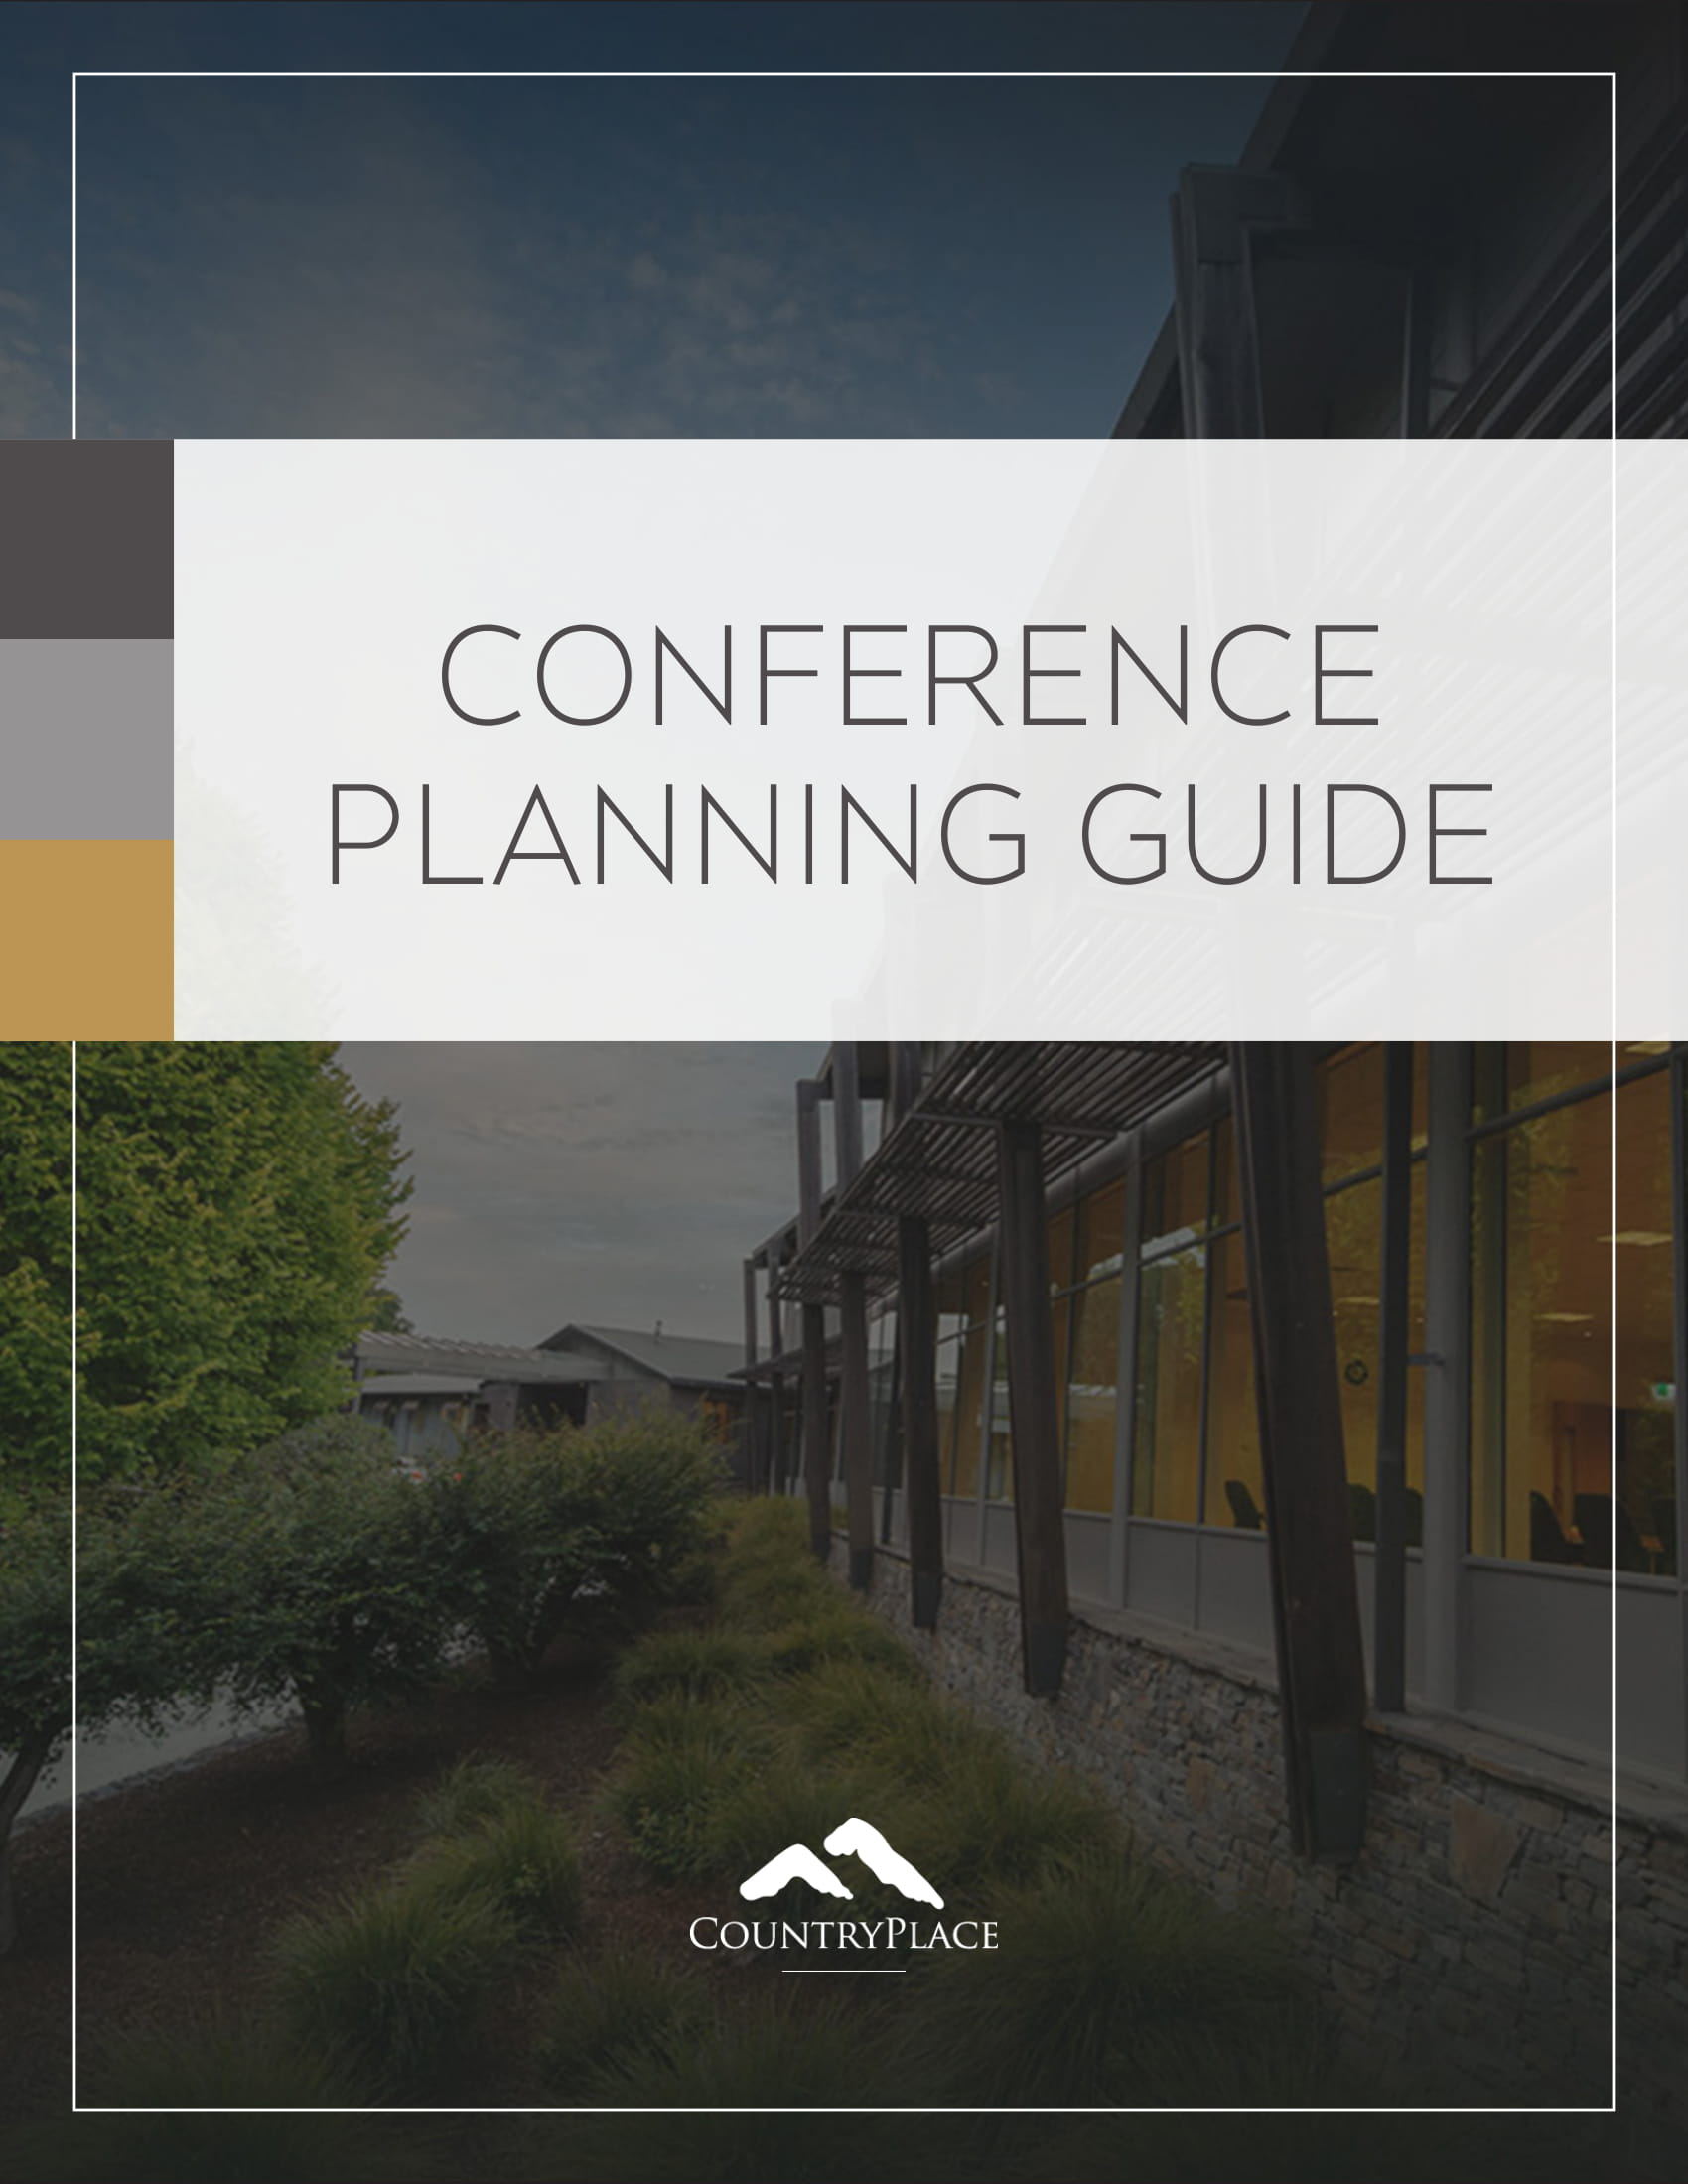 conference project planning guide example 01